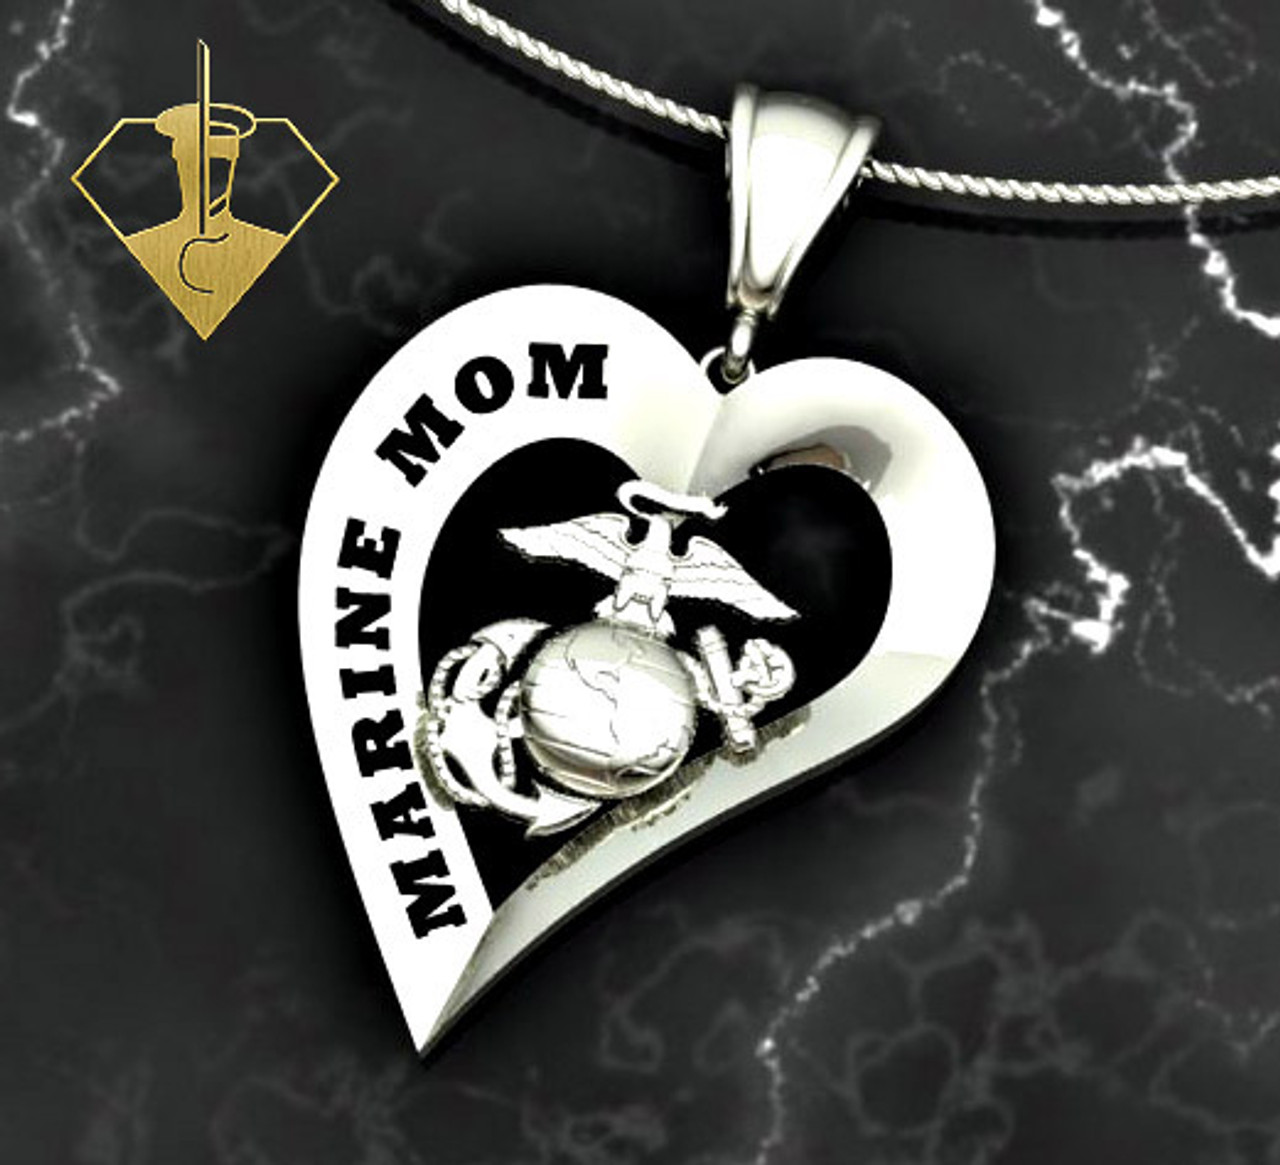 "Marine Mom Heart Diamond Etched Pendant w/18"" Sterling Silver Chain also available in 10k, 14k and 18k white or yellow gold ""Made by Marines for Marines""    100% Satisfaction Guaranteed"